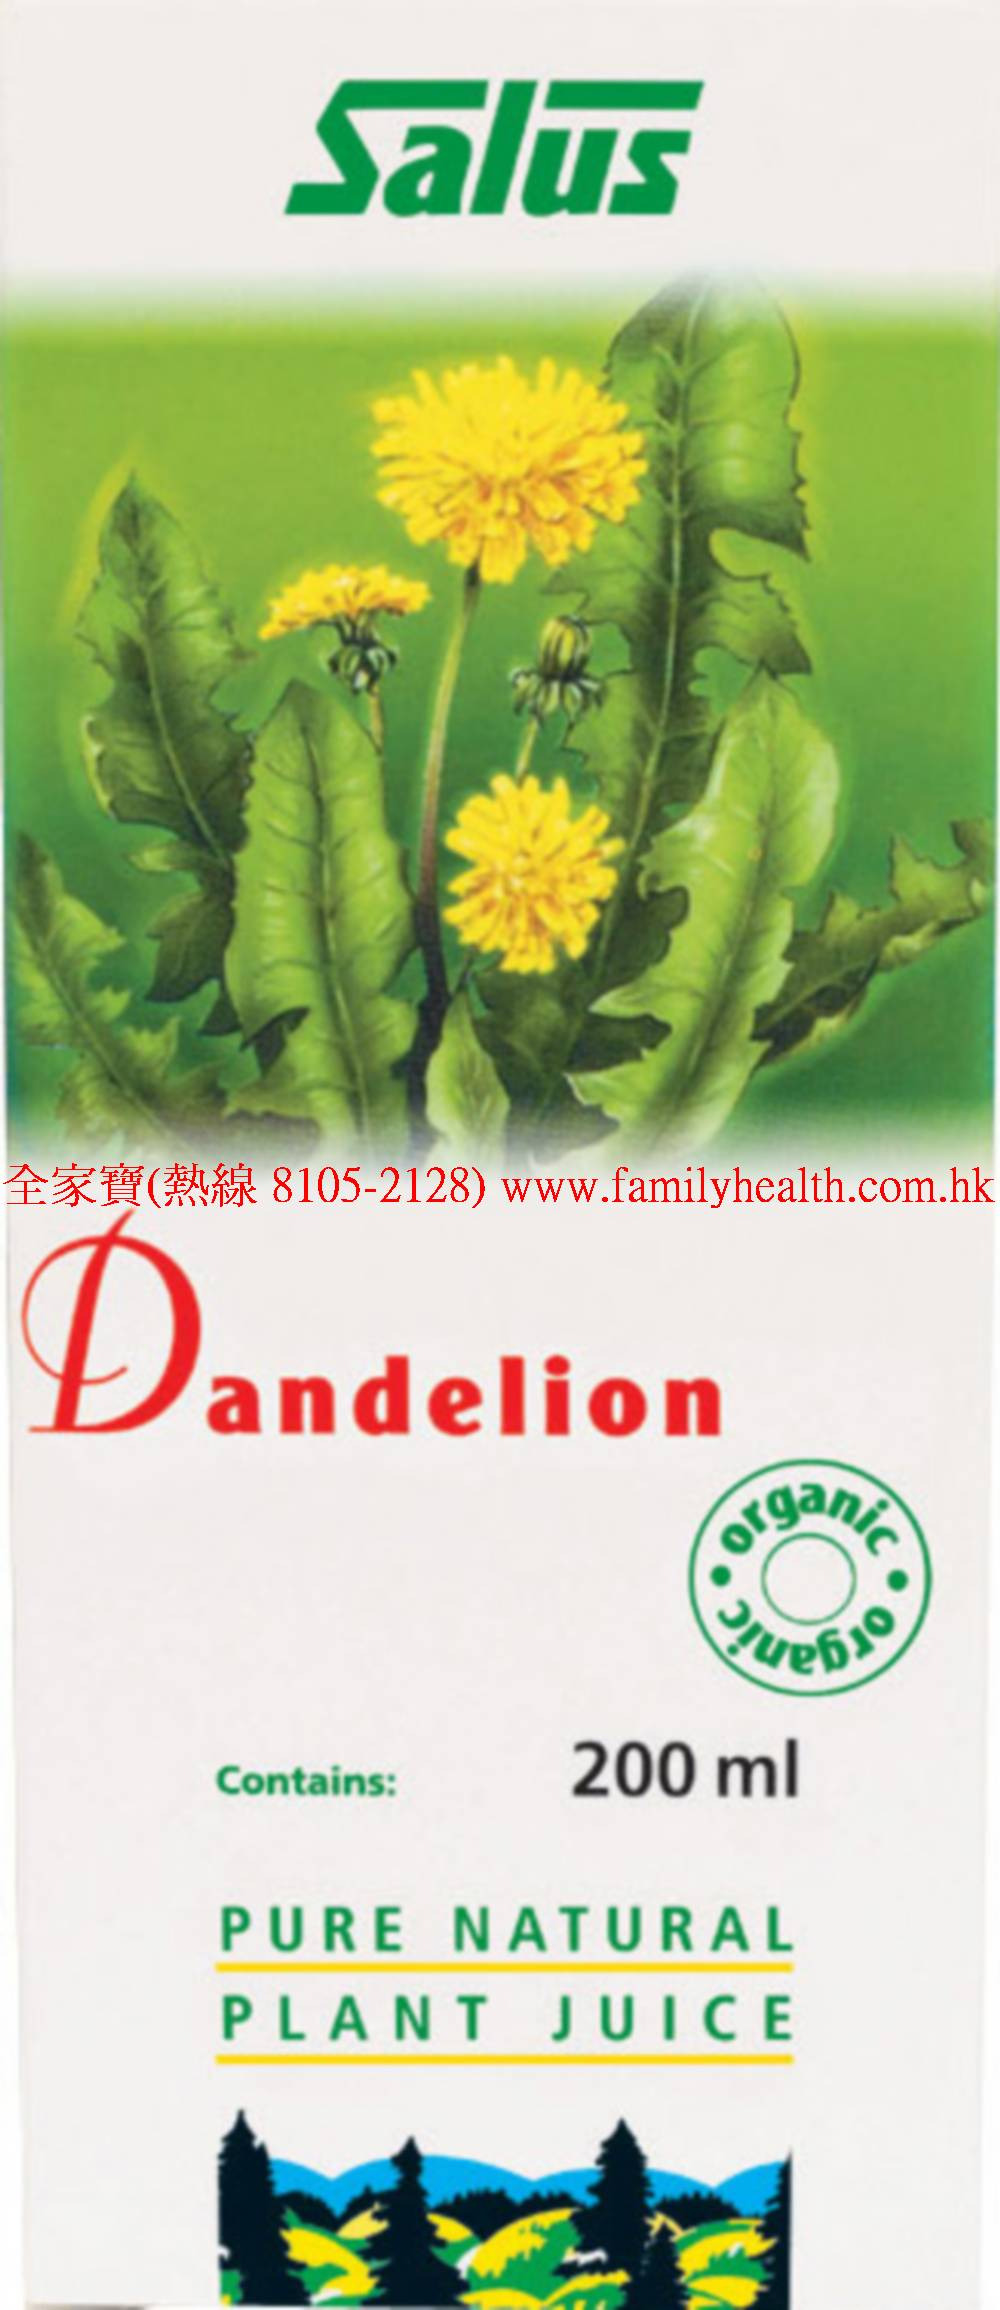 http://www.familyhealth.com.hk/files/full/198_0.jpg